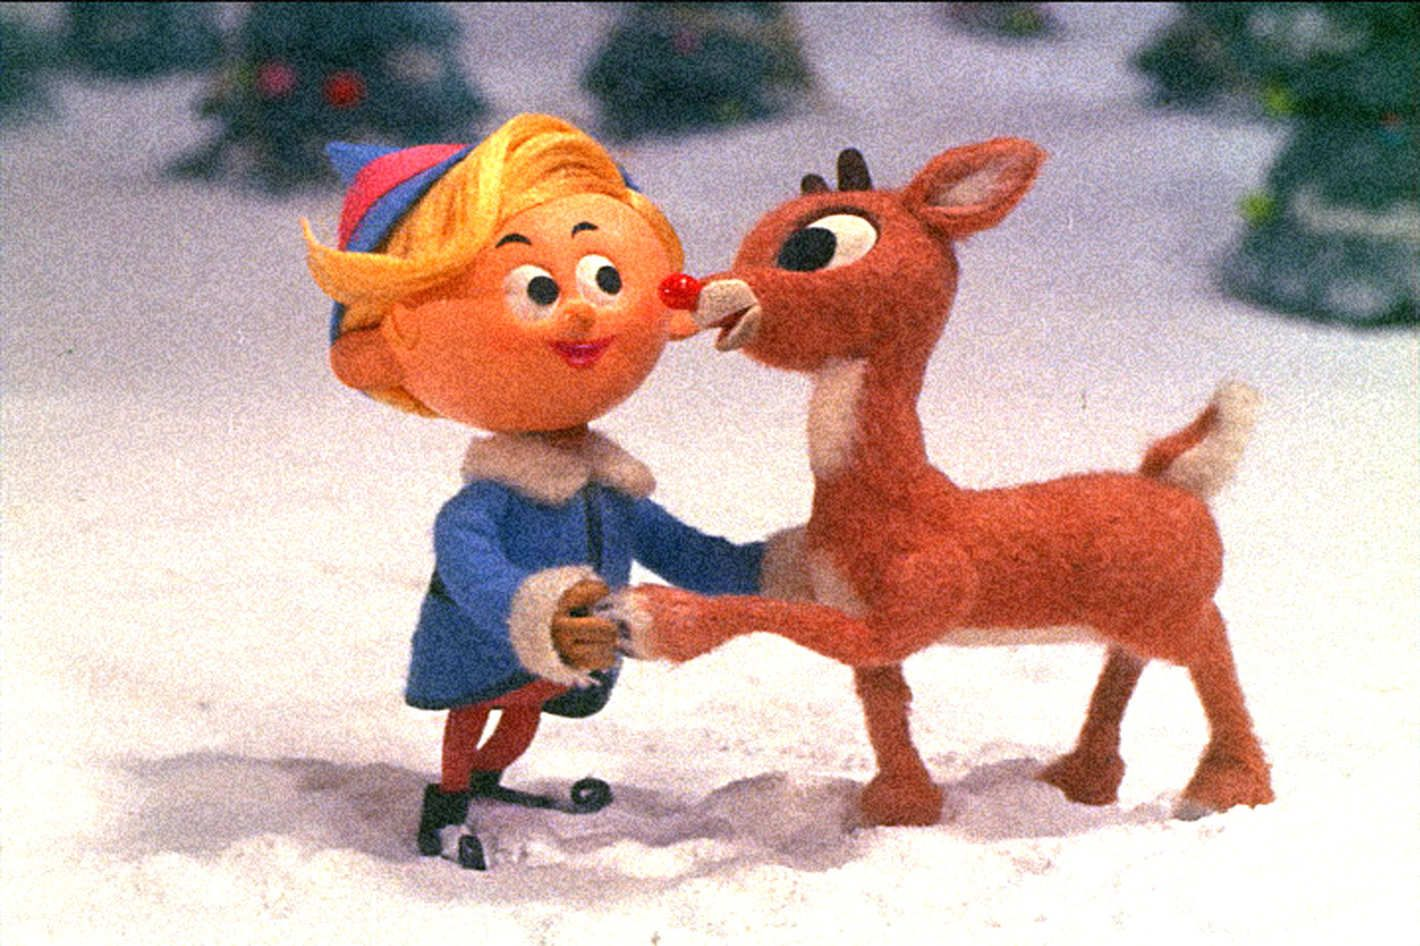 Rudolph with that ass so tight